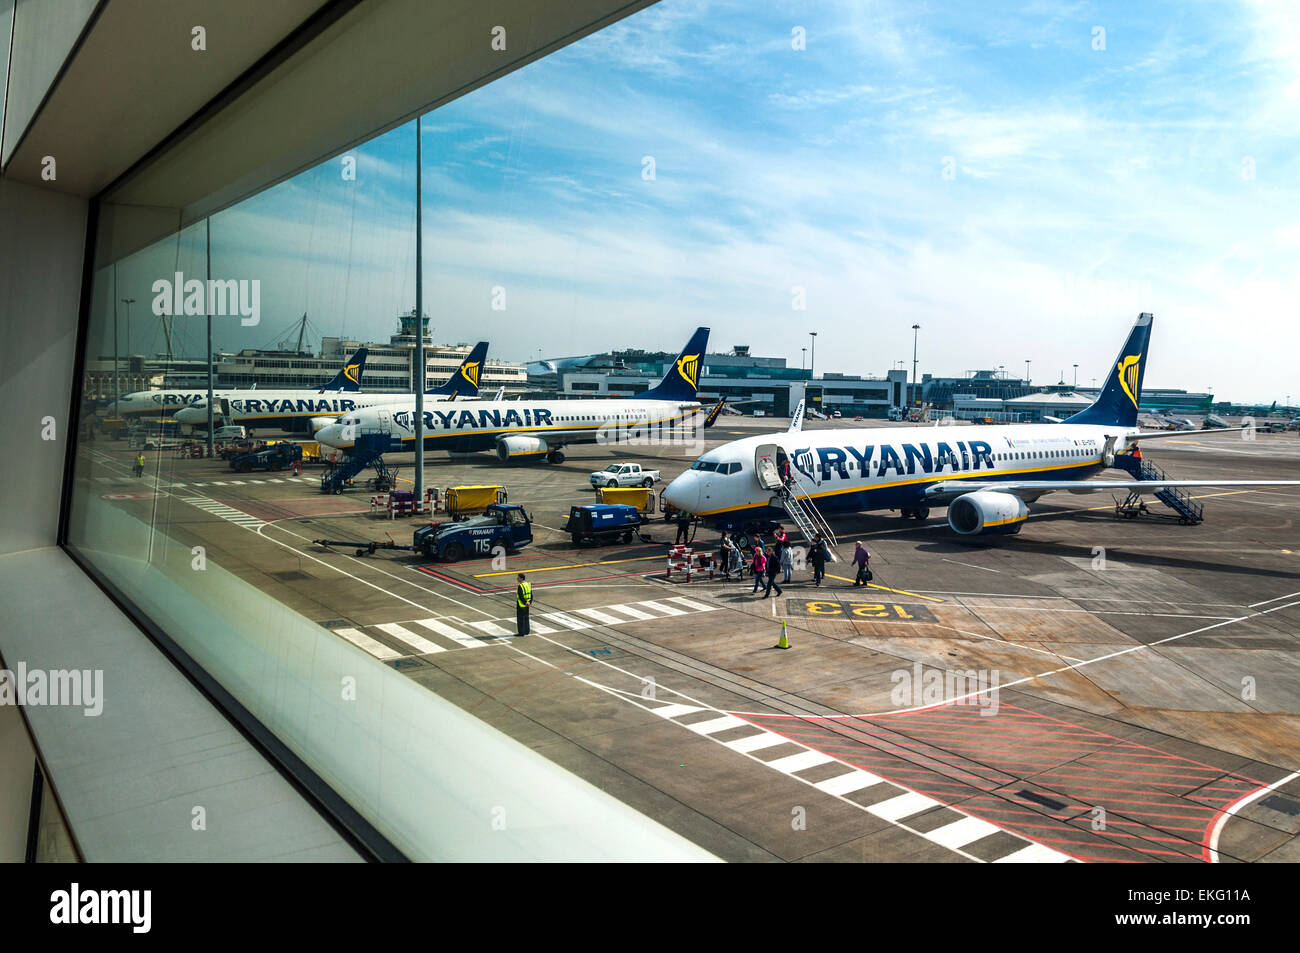 Ryanair aircraft on the stand at Dublin Airport Ireland - Stock Image